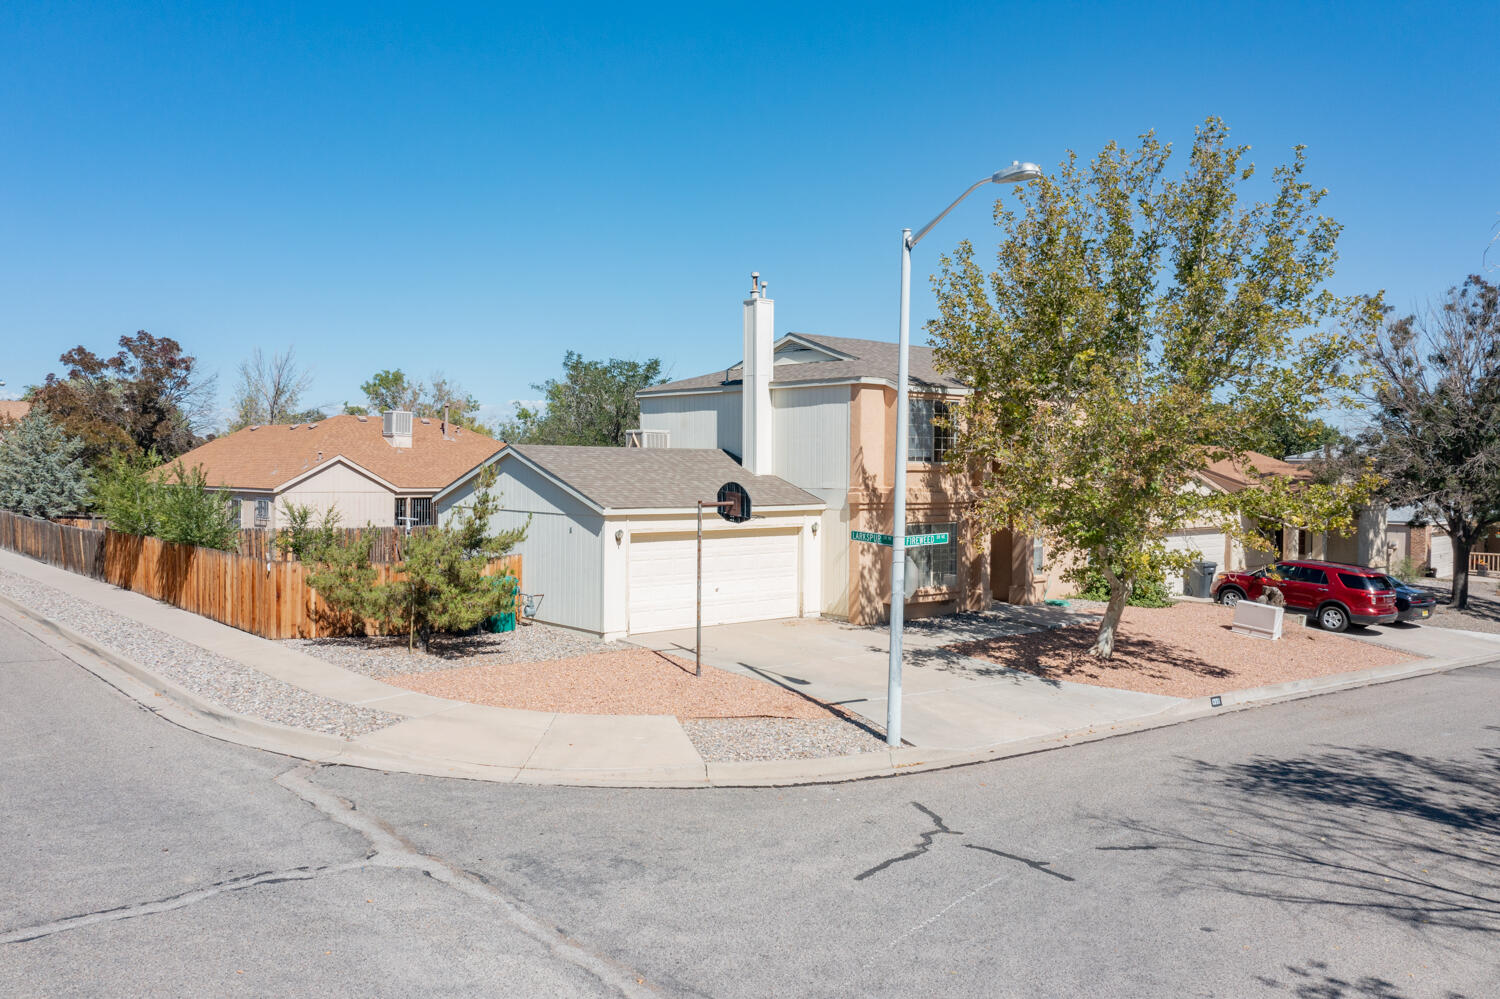 Welcome to this wonderful 1 owner home in North Hills Rio Rancho! This 3 bedroom 2 bath Amrep build has 1473 sqft and is on a corner lot. Upon entry you will find yourself in the formal living, which leads in to the open eat in kitchen. As you head upstairs you'll notice the real wood banister maintains the open floor plan feeling up to three bedrooms, and 2 bathrooms. Being a corner lot, this backyard has all the space to entertain and enjoy for years to come. Head out to see it today! This home has the original roof and Polybutylene piping.